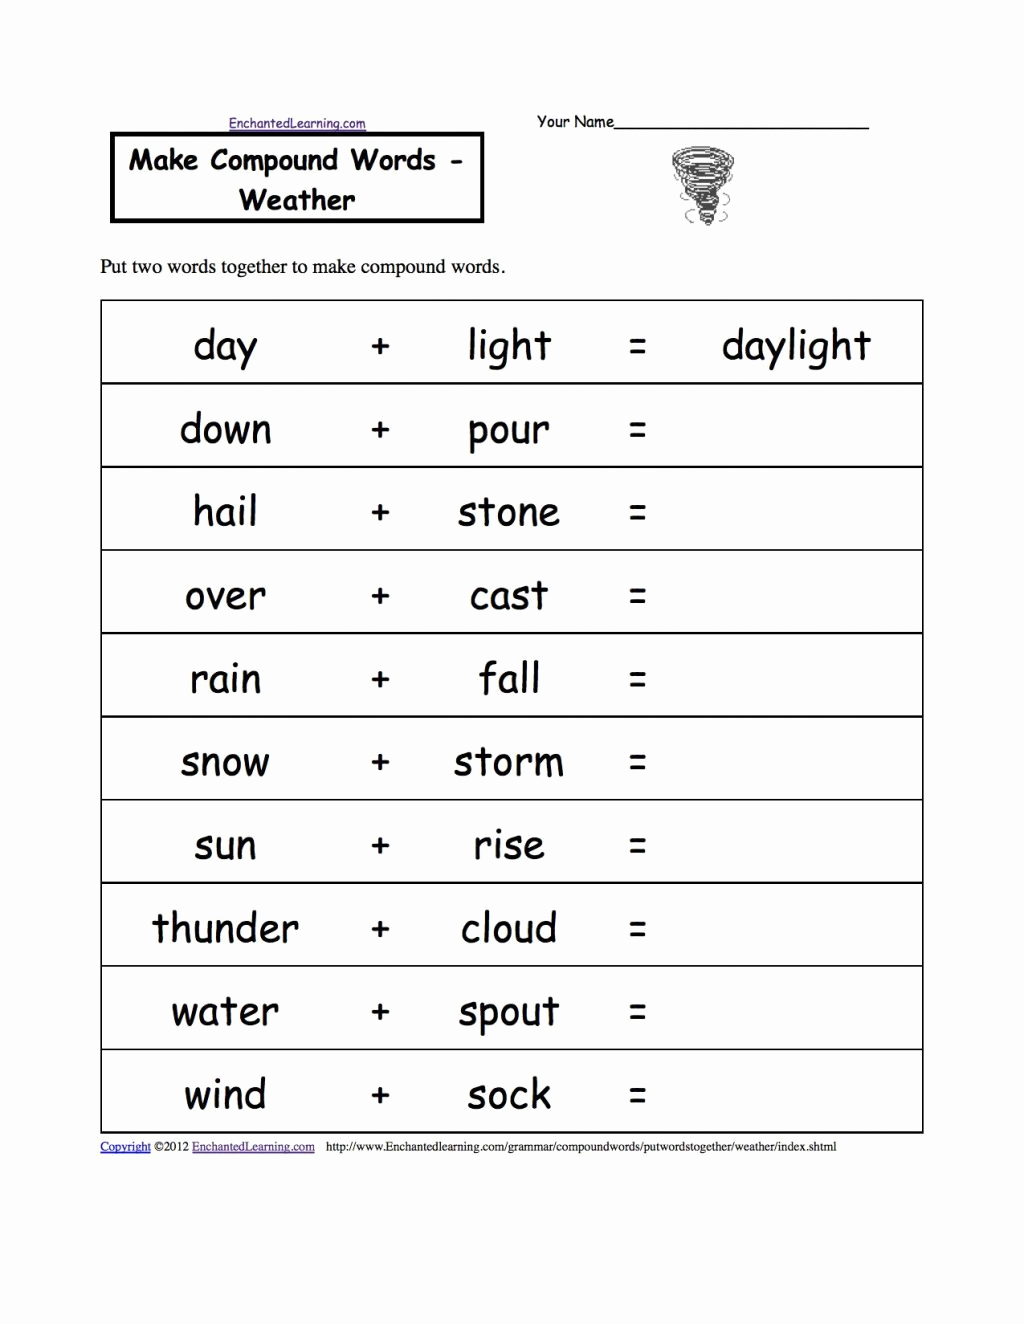 Spelling Worksheets 2nd Graders Awesome 2nd Grade Spelling Worksheets to You 2nd Grade Spelling